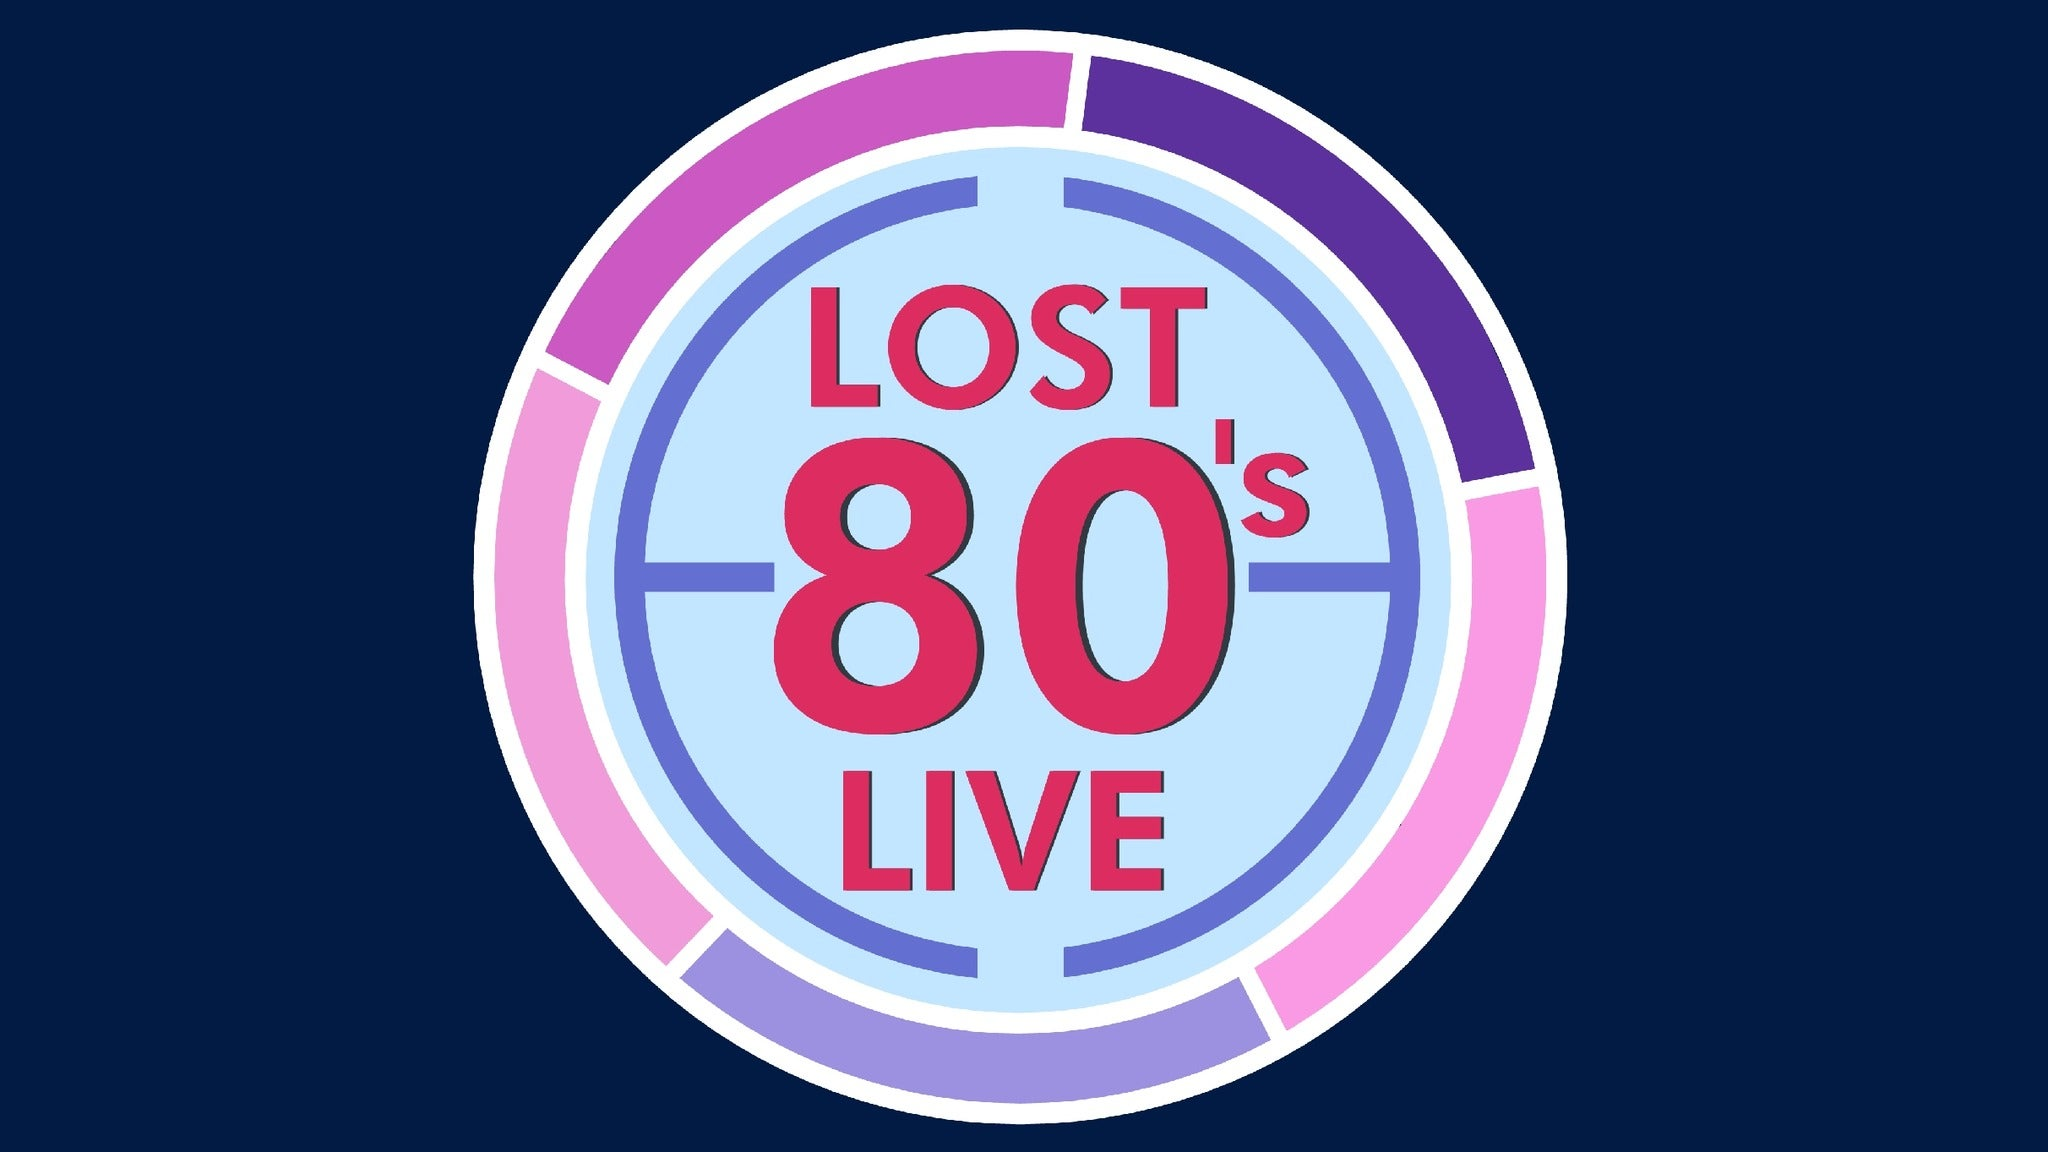 Lost 80's Live at Mountain Winery